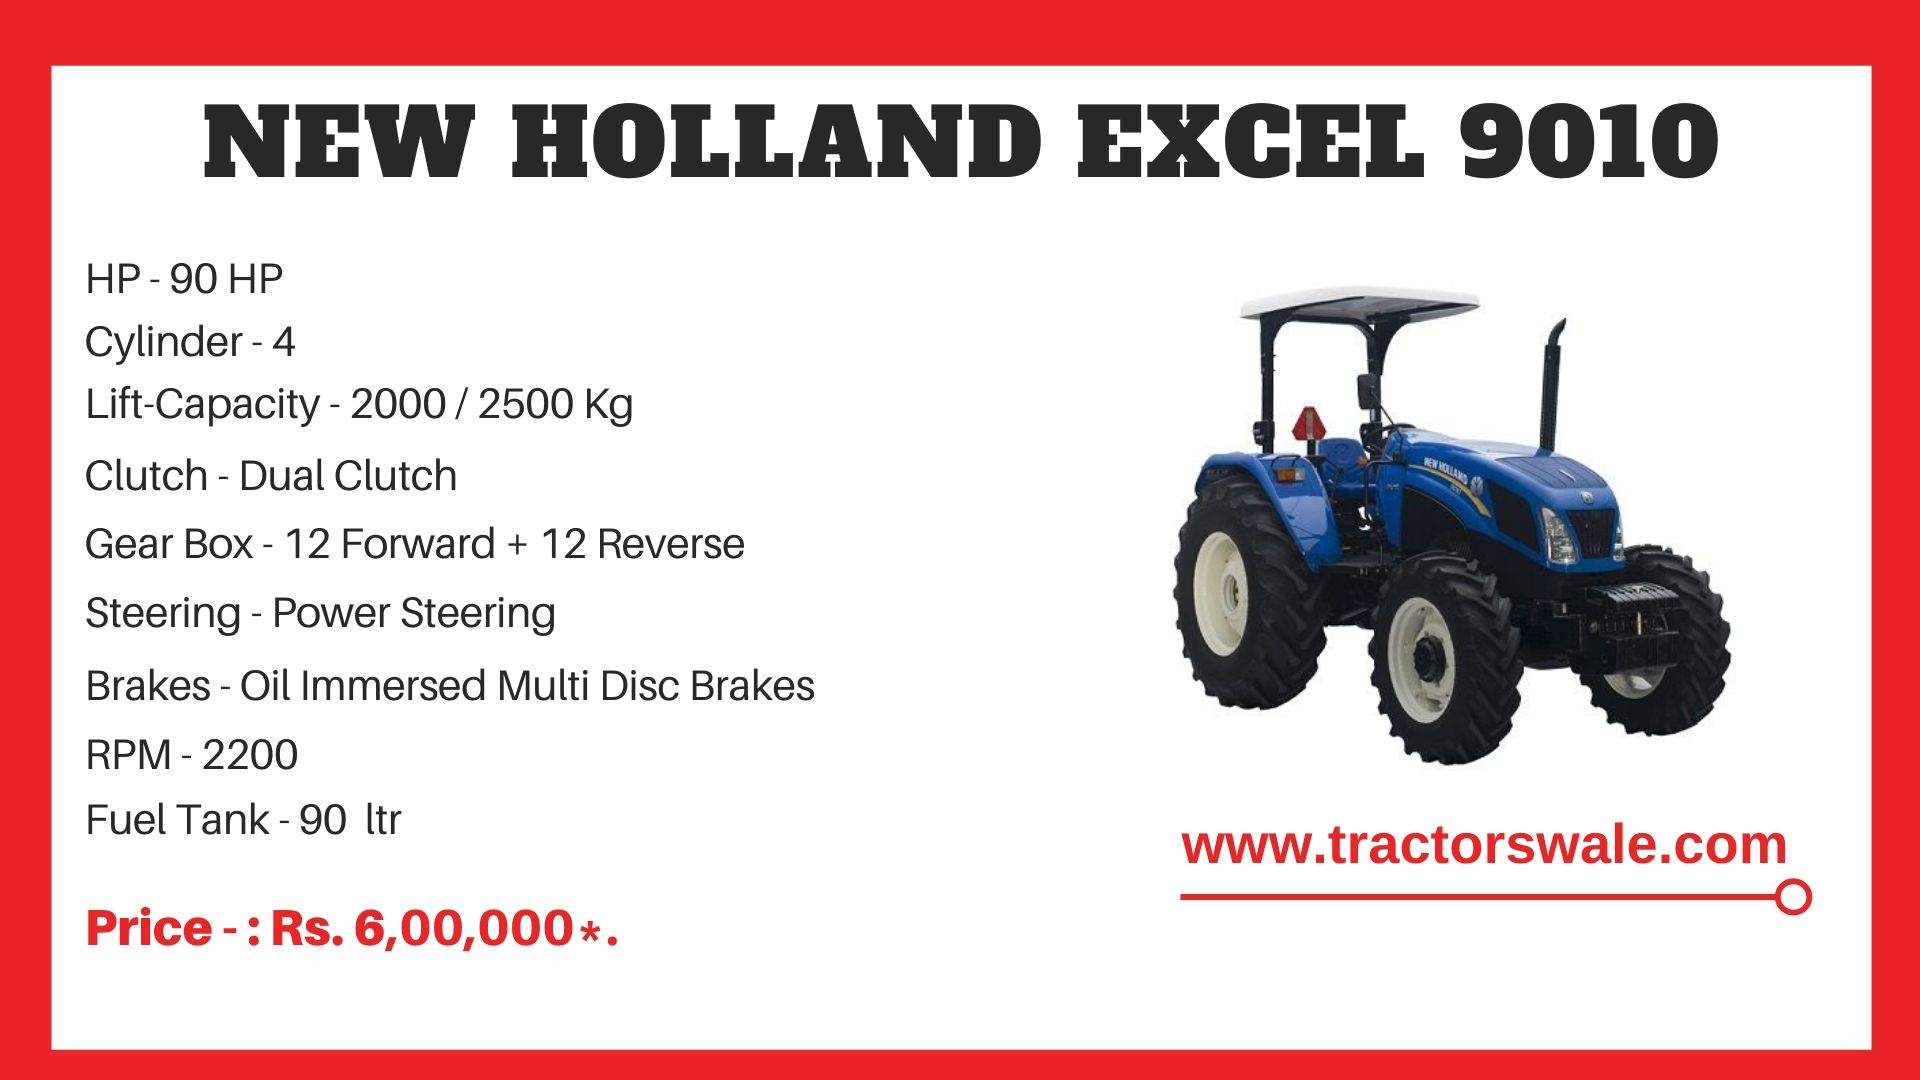 New Holland Excel 9010 tractor specs